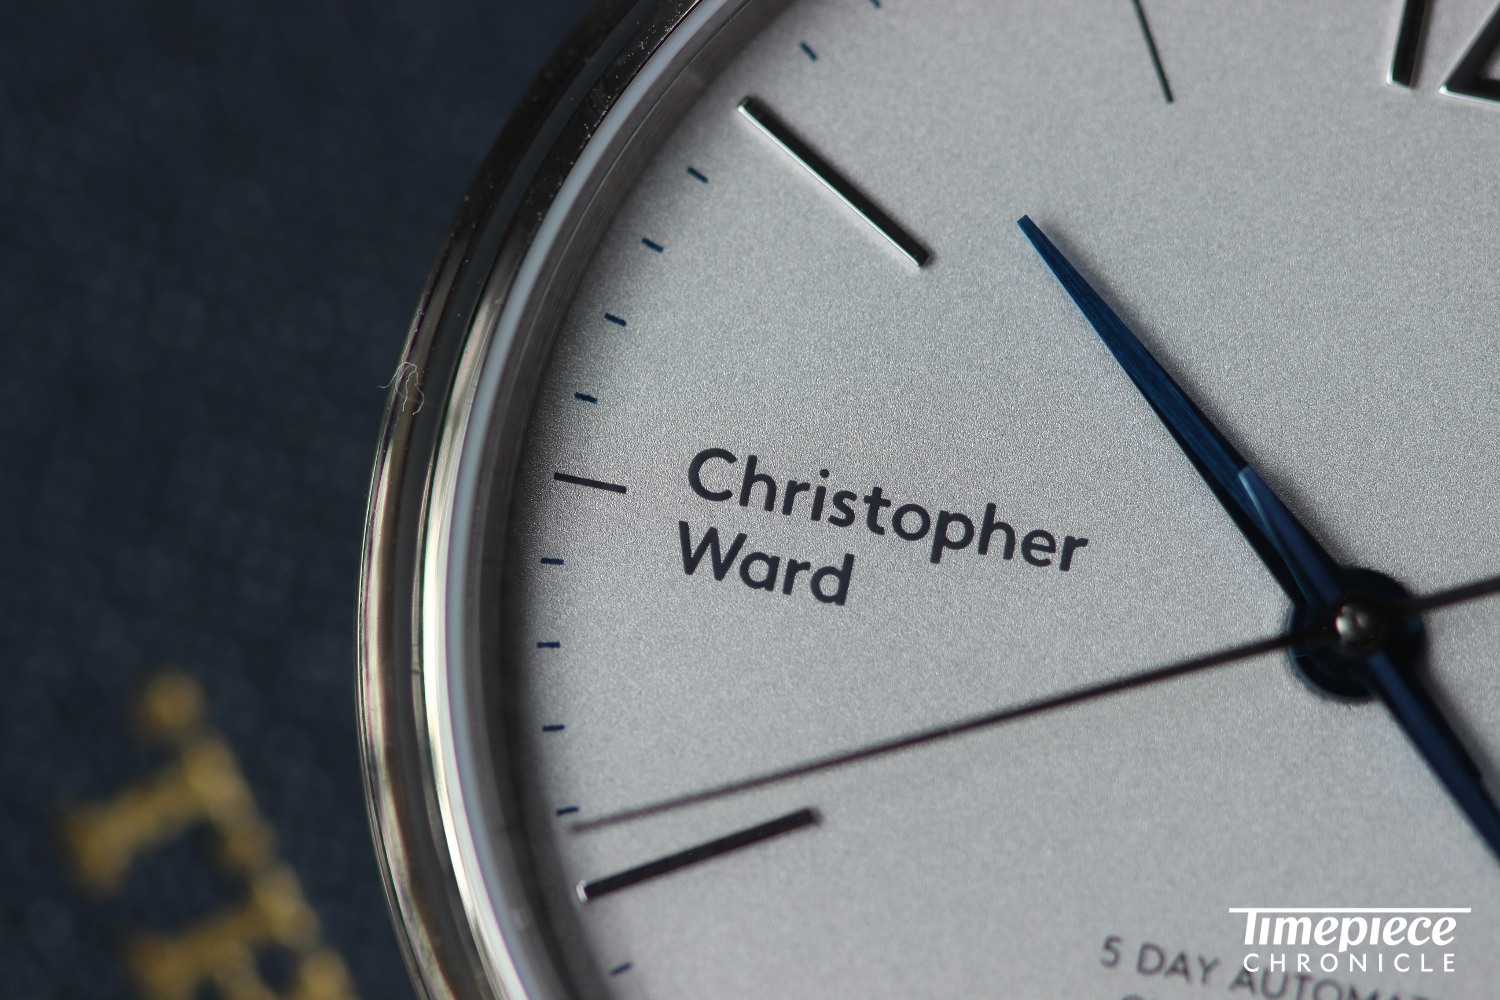 Christopher Ward 5 Day Automatic Dial macro 8.JPG